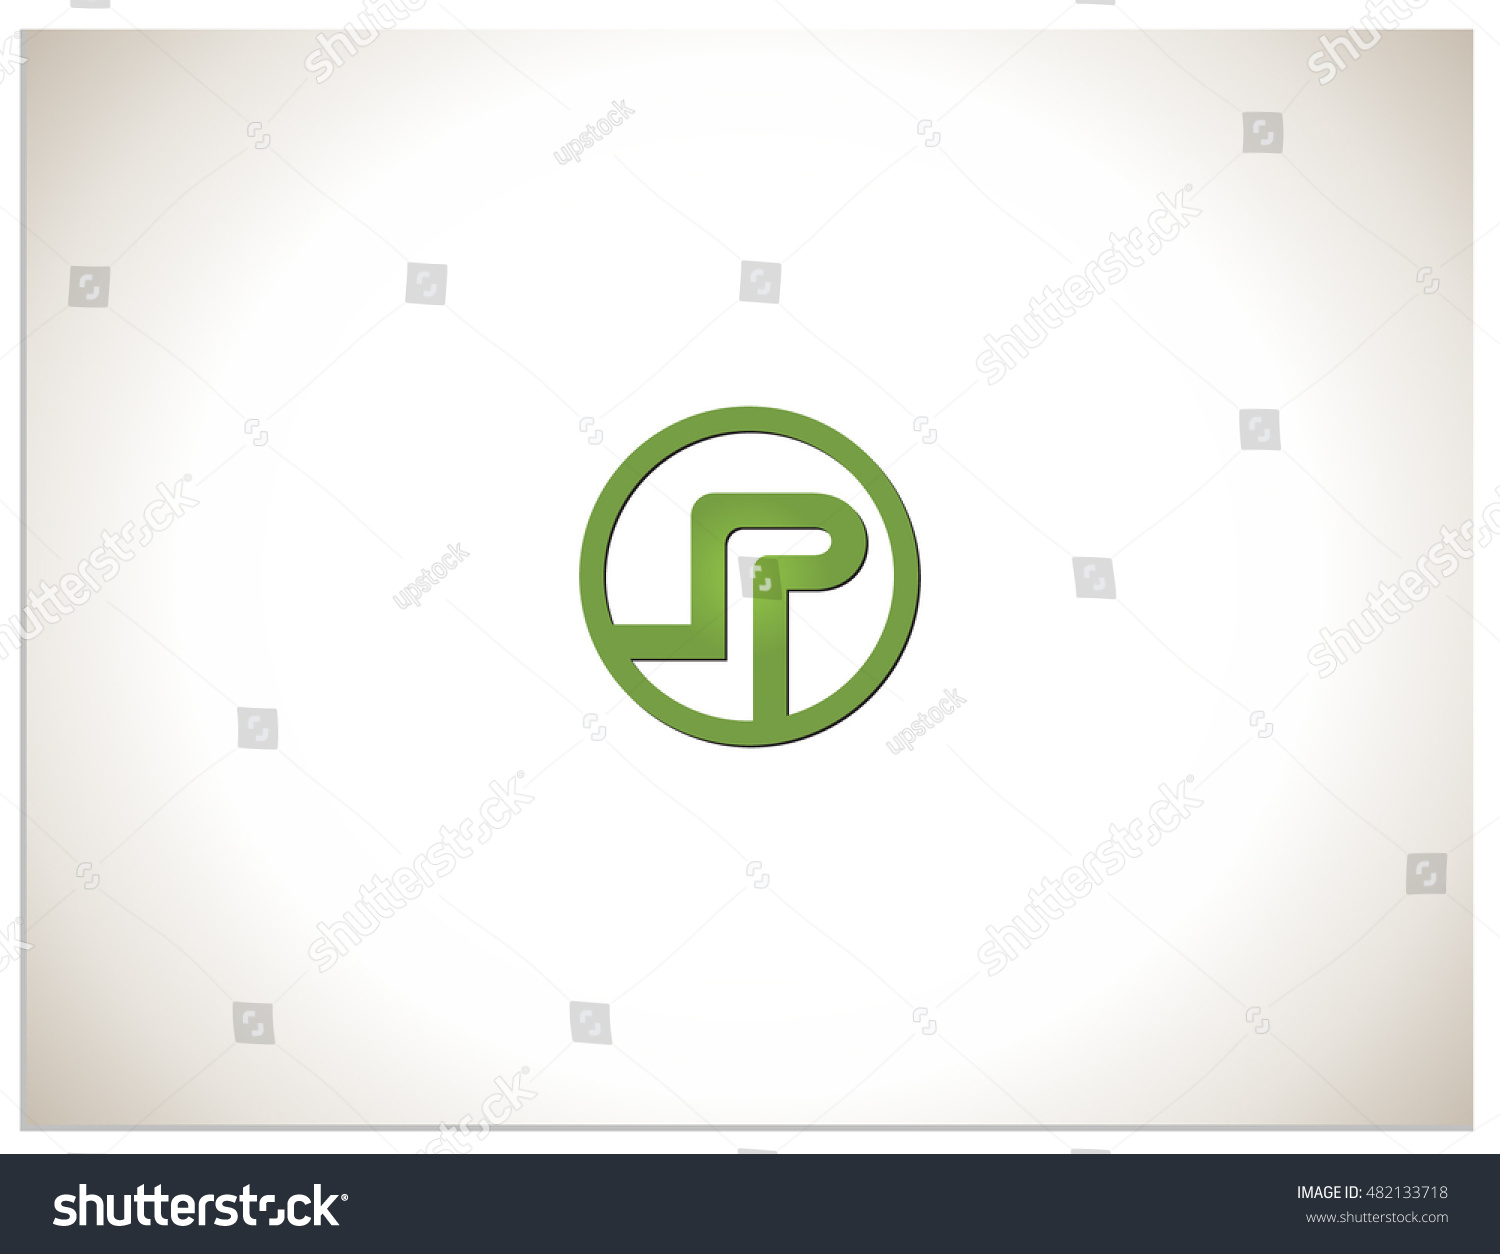 Text Logo Which Consists Connected Abbreviations Stock Vector